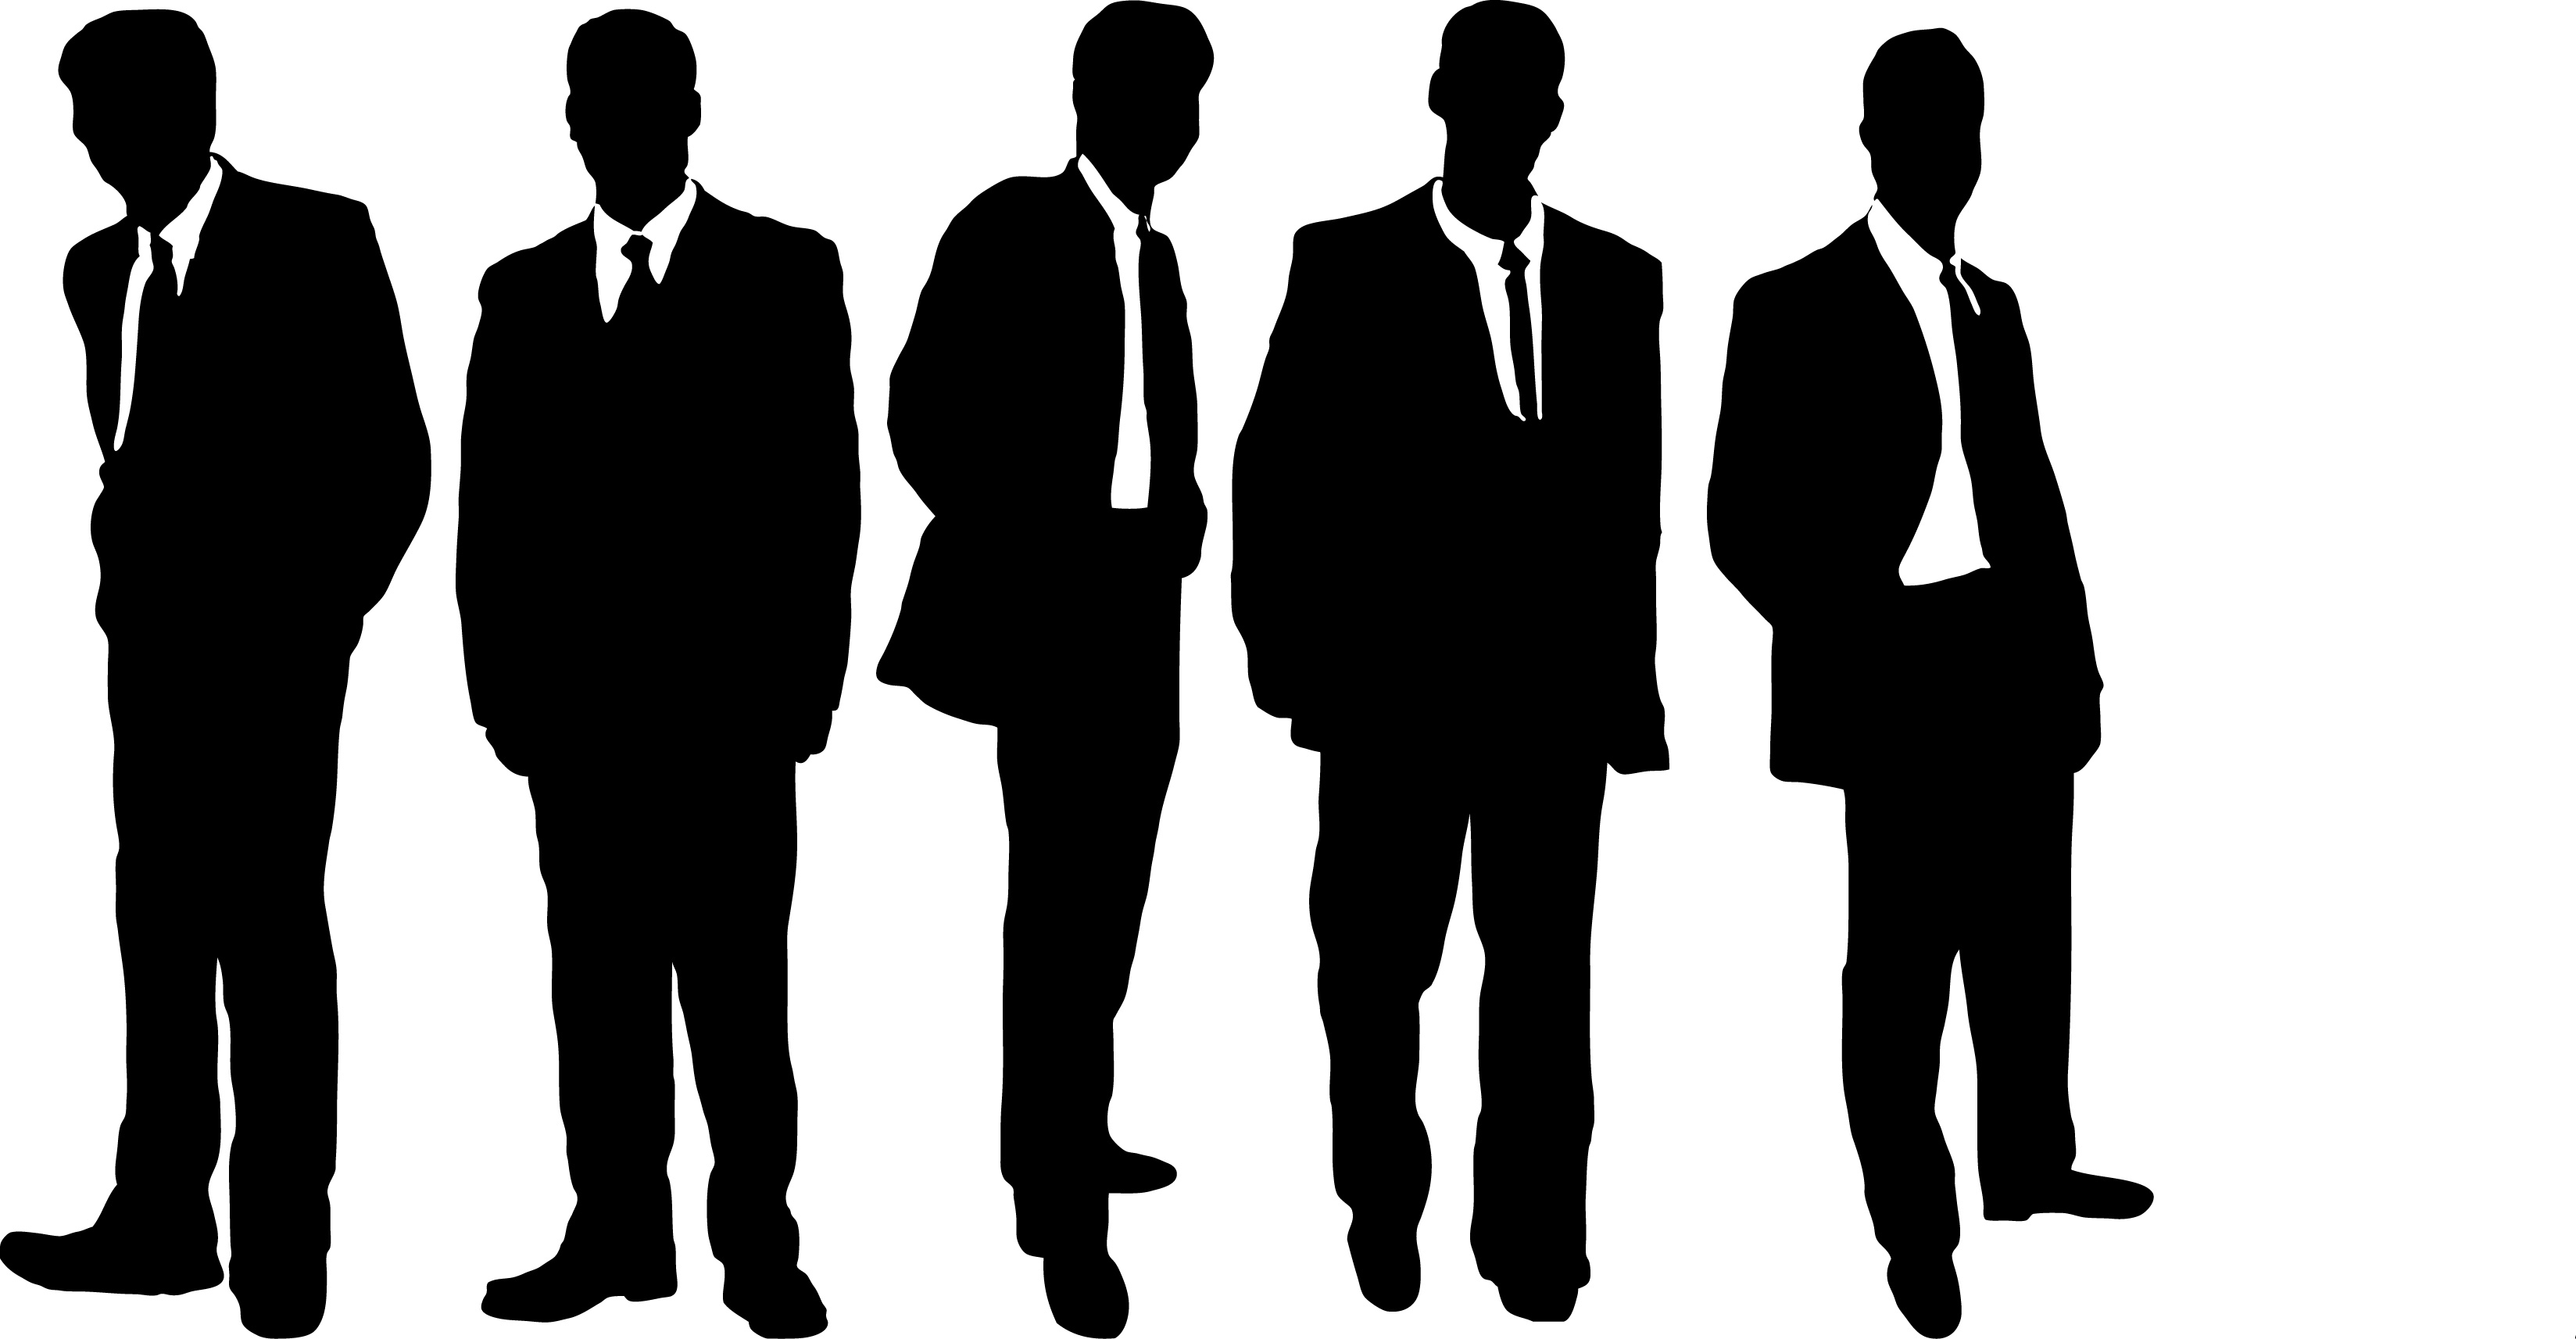 3296x1713 Party People Clip Art Free Clipart Images